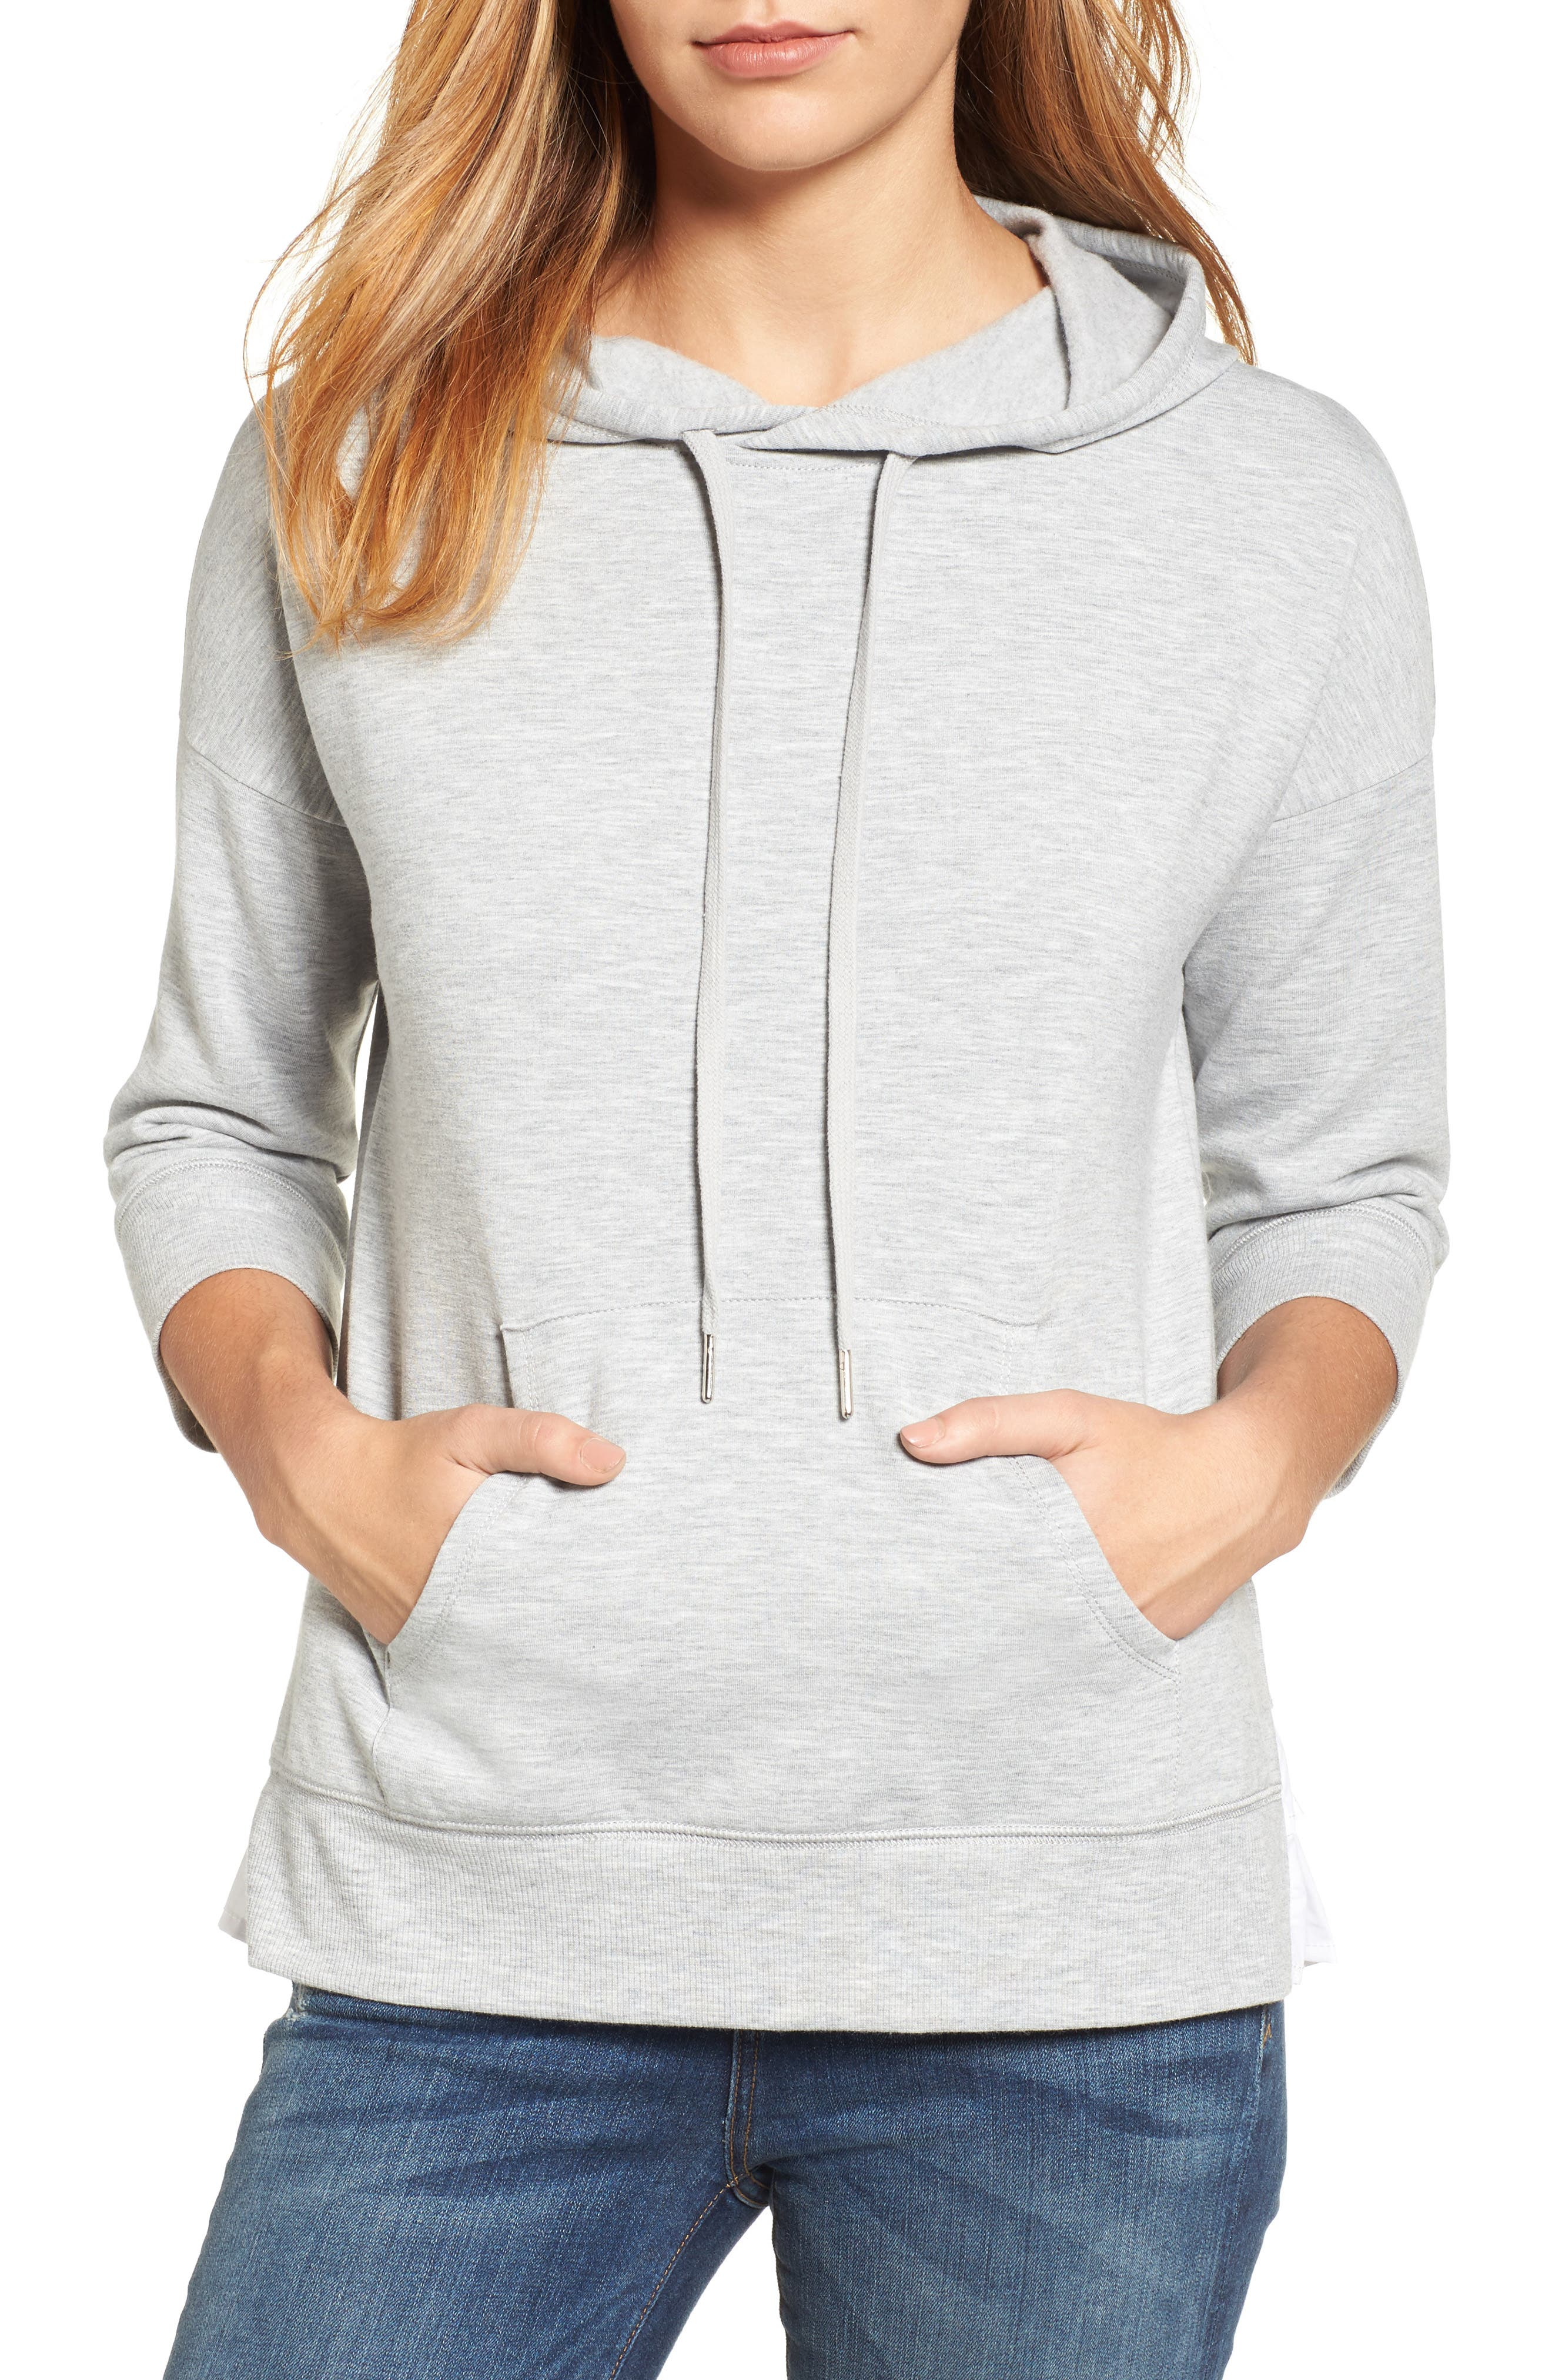 Woven Inset Knit Hoodie,                             Main thumbnail 1, color,                             030